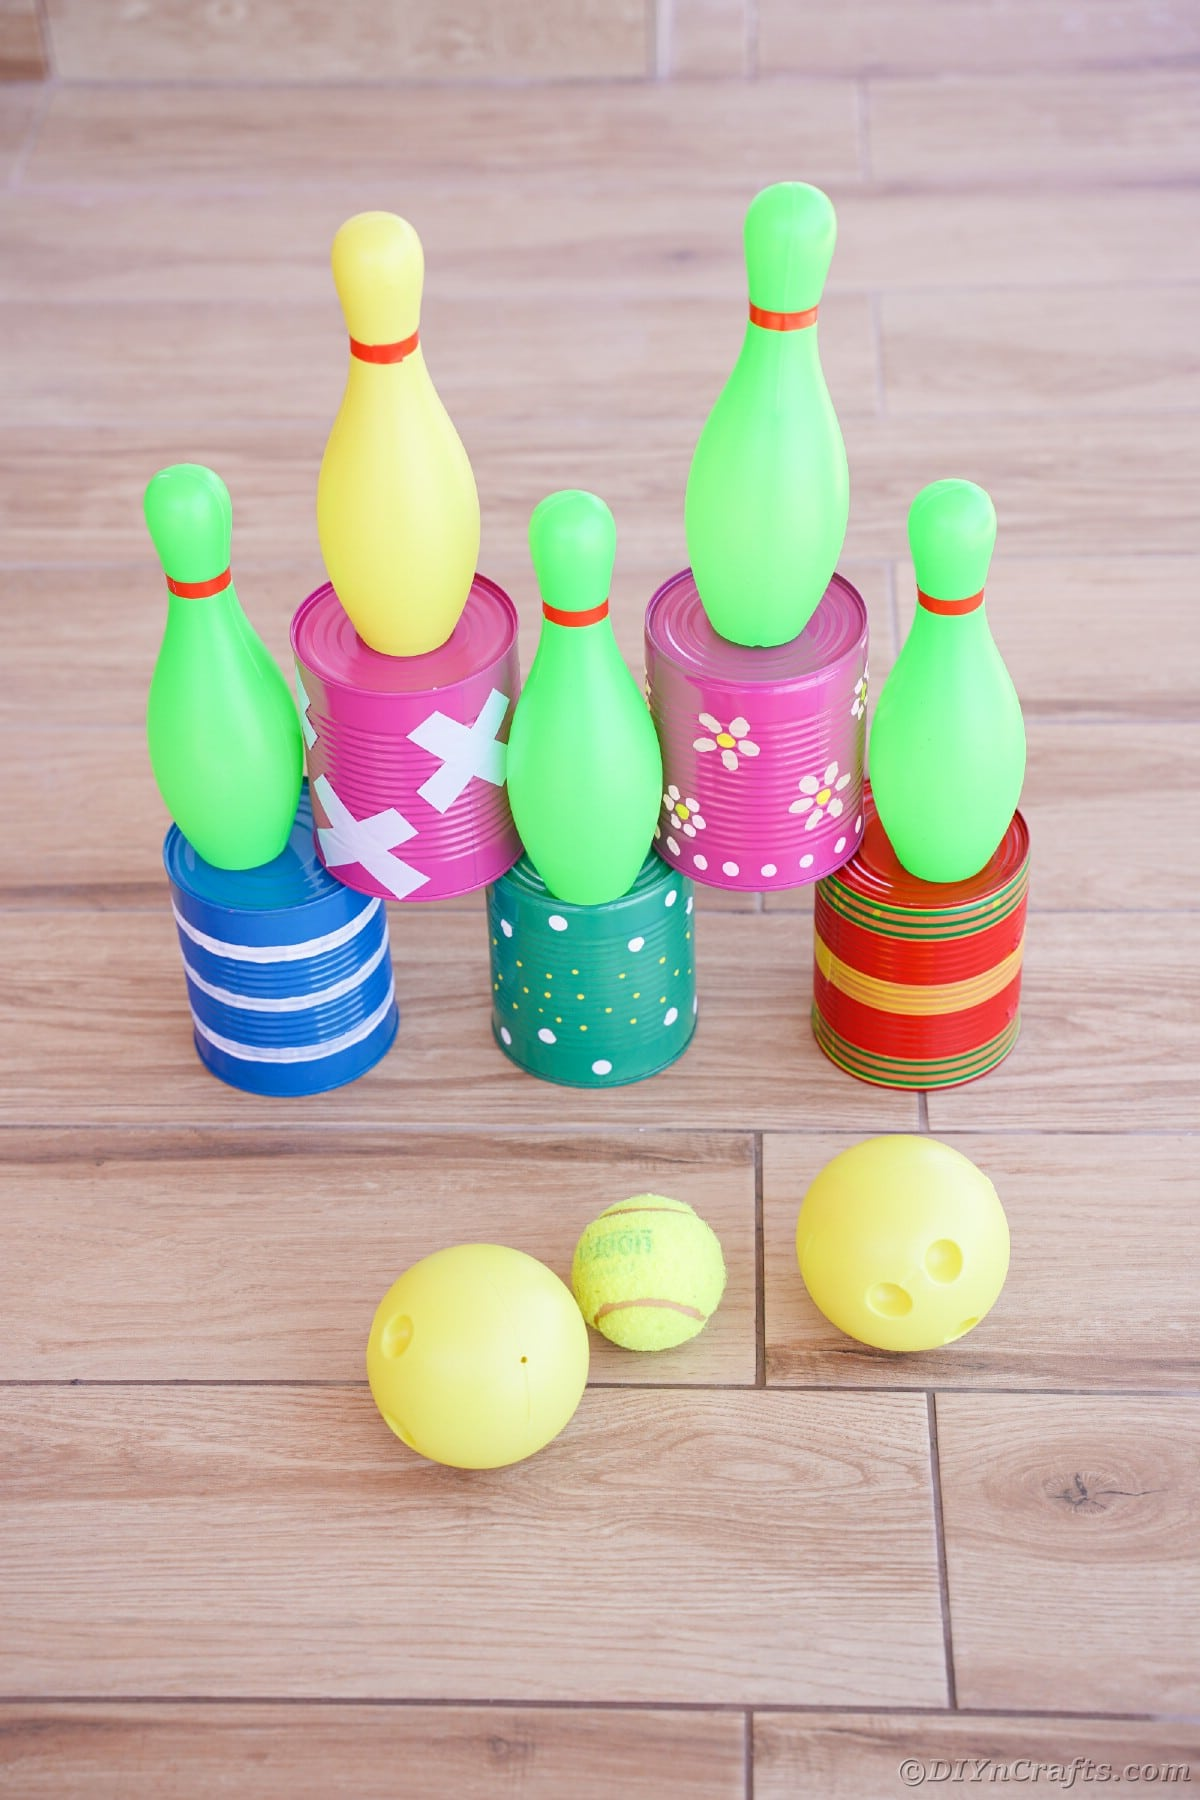 Tin cans with mini bowling pins on top and balls in front